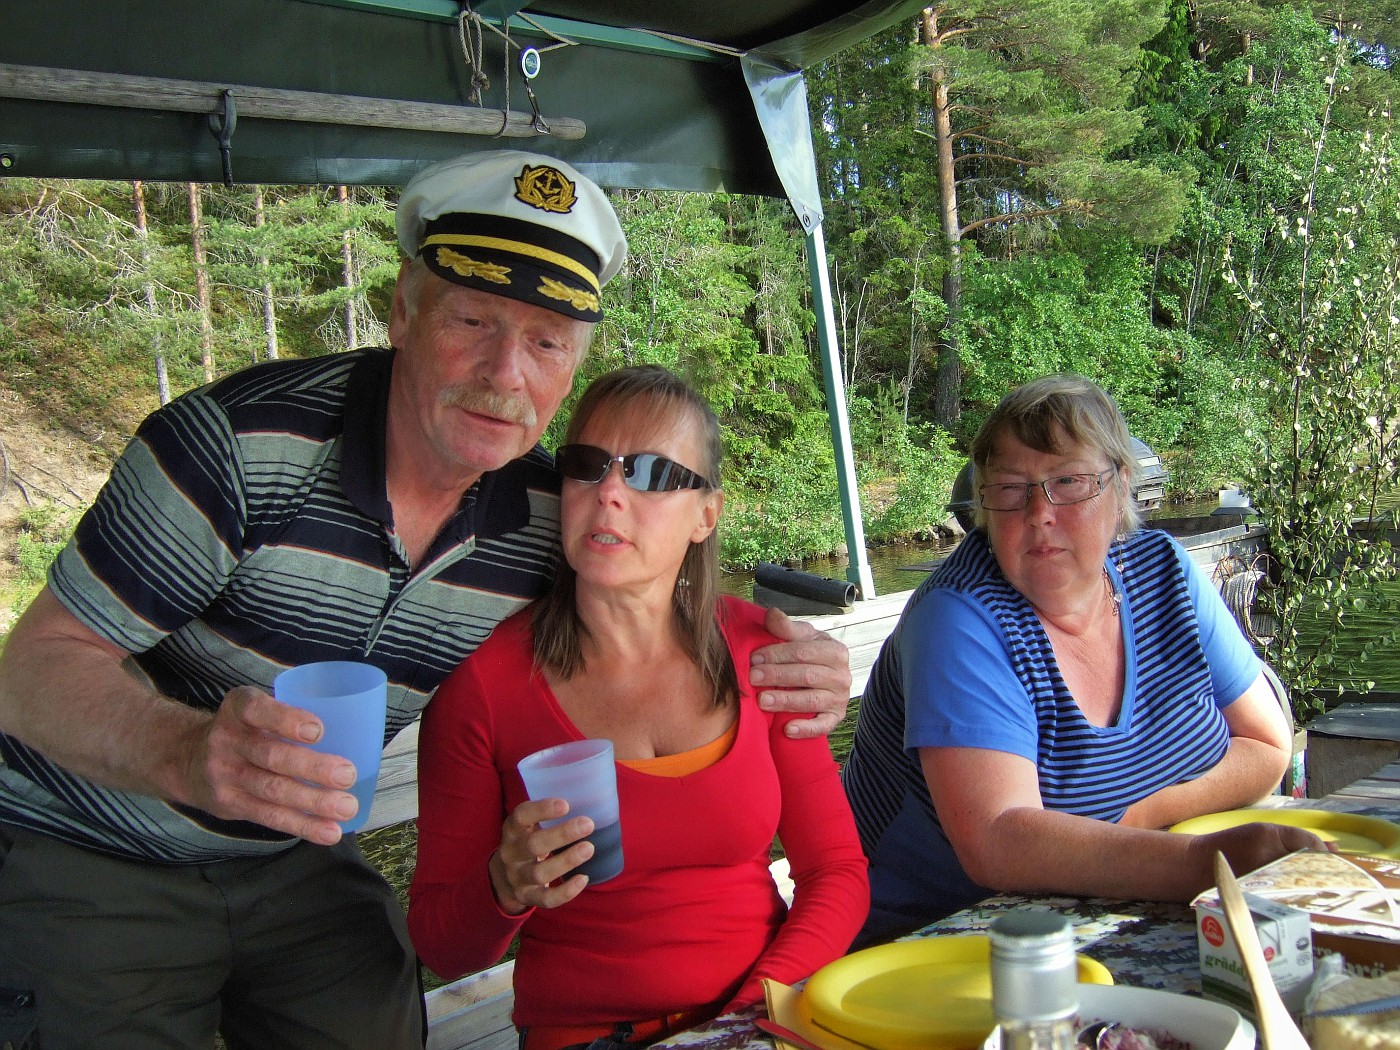 2010 06 29 08 Surströmming evening on Gudmund's raft.JPG